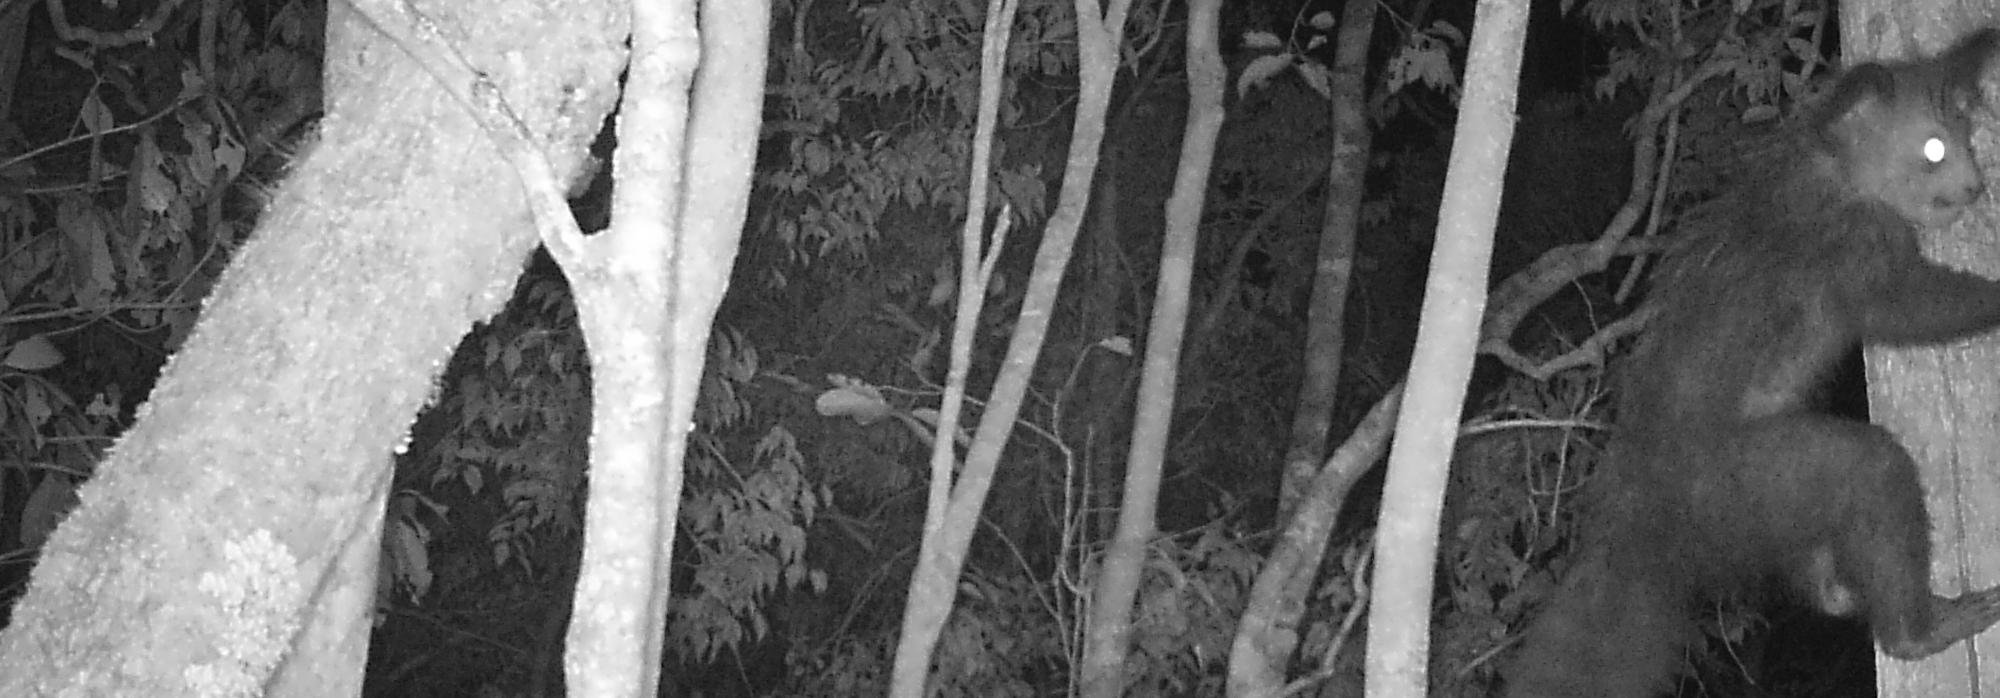 Aye-aye captured by Camera traps in the new Magabe protected area